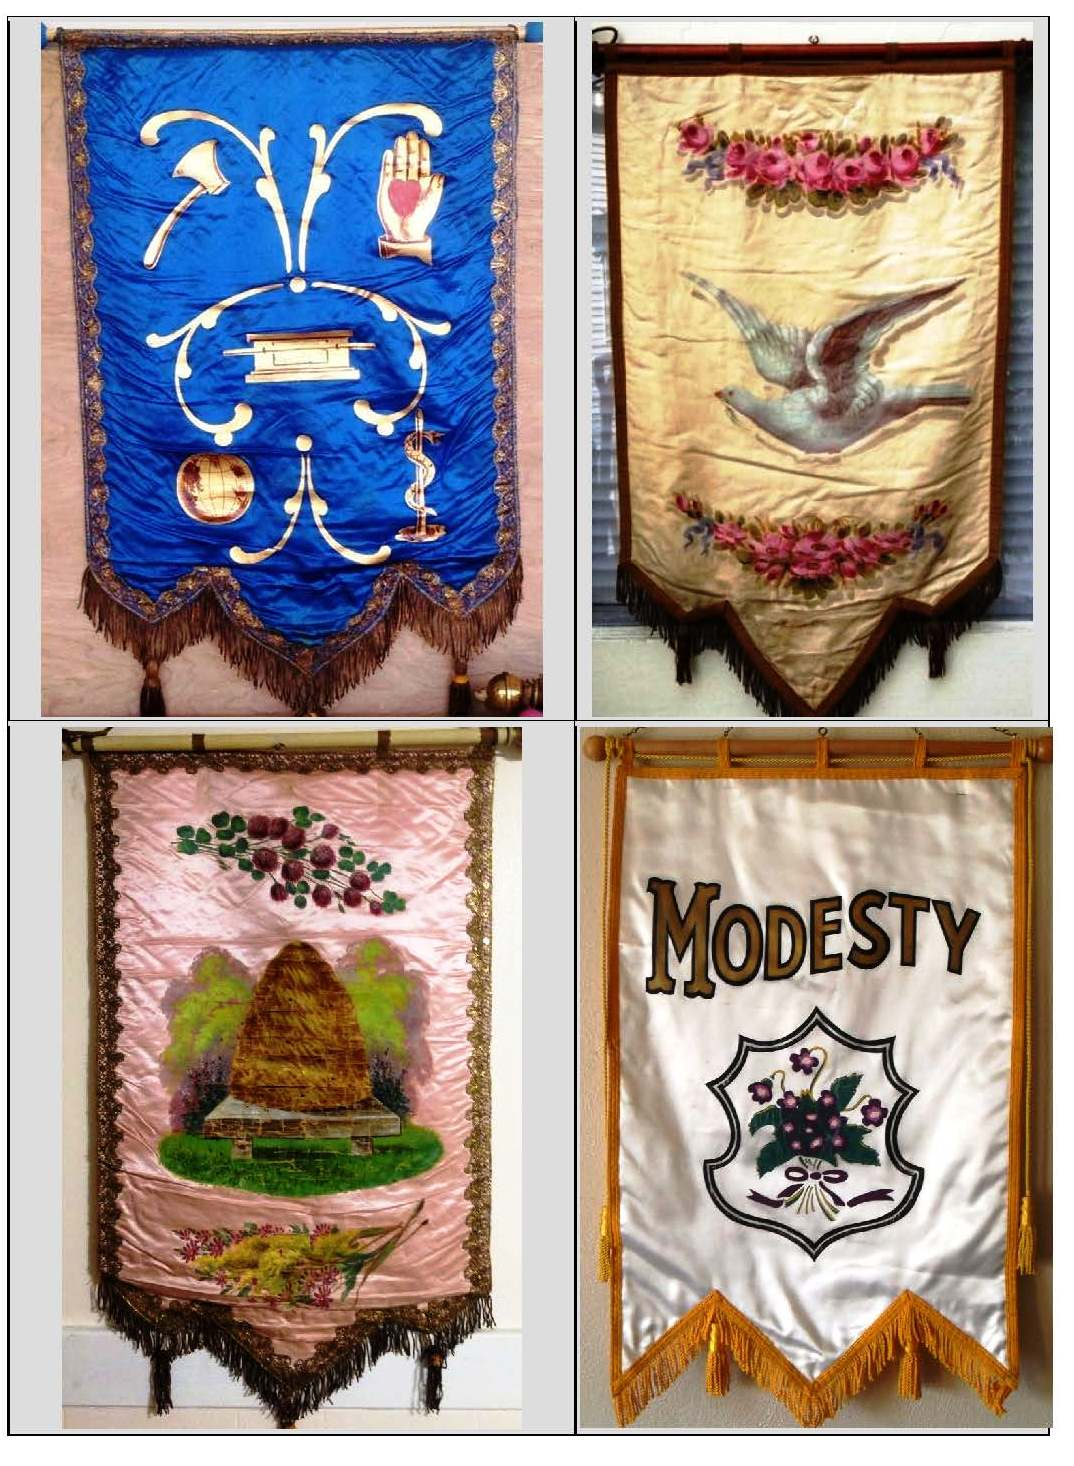 Indianapolis collected showdown at the odd fellows lodge historic silk banners with various odd fellows symbols are readily available on ebay the four banners above all sold within the past month at prices ranging from biocorpaavc Image collections